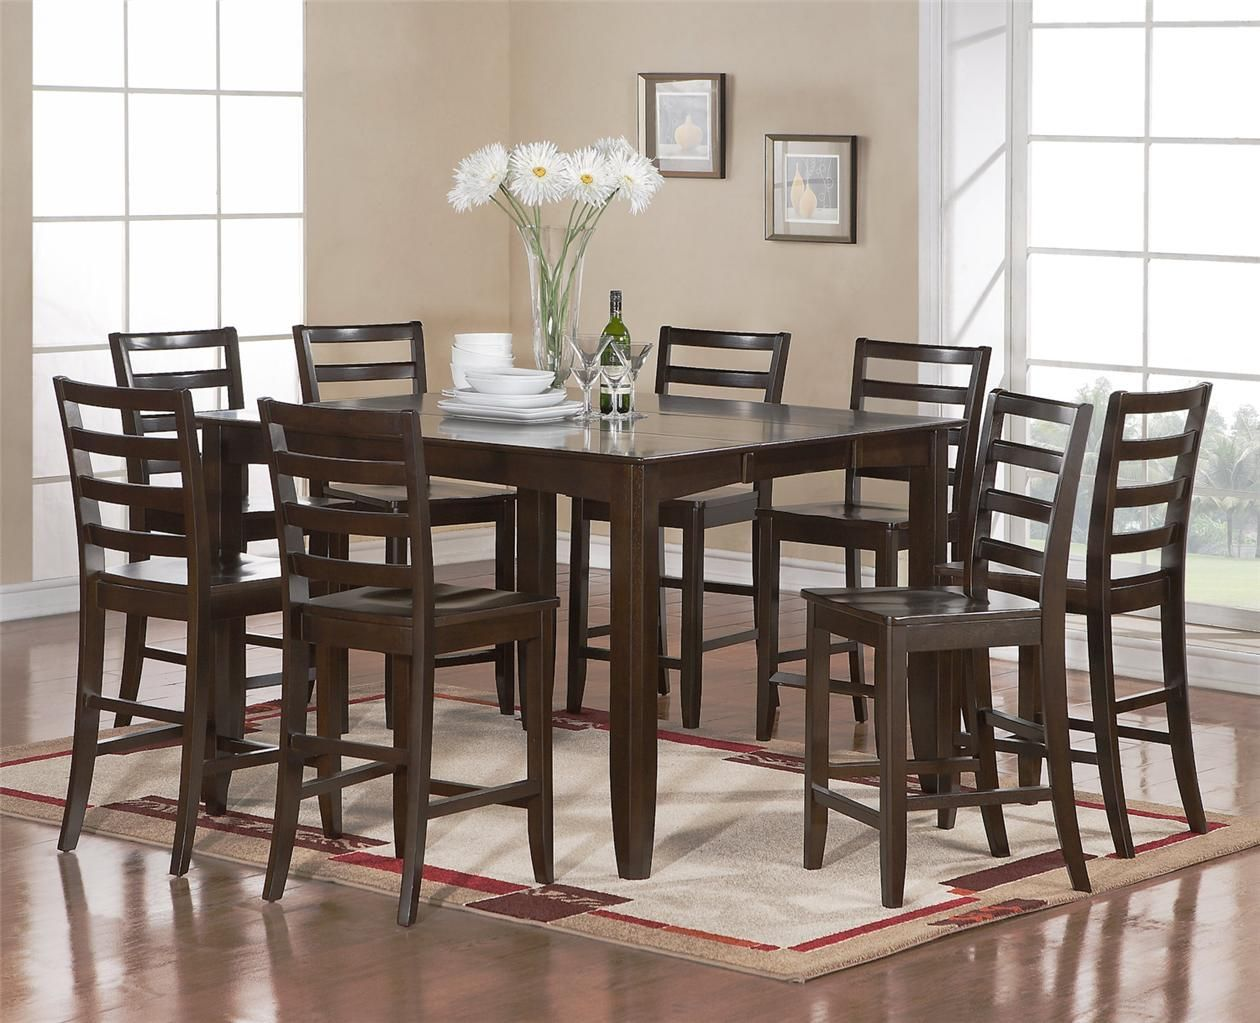 Vistit Our Dinette4less Store For Many More Dining Dinette Kitchen